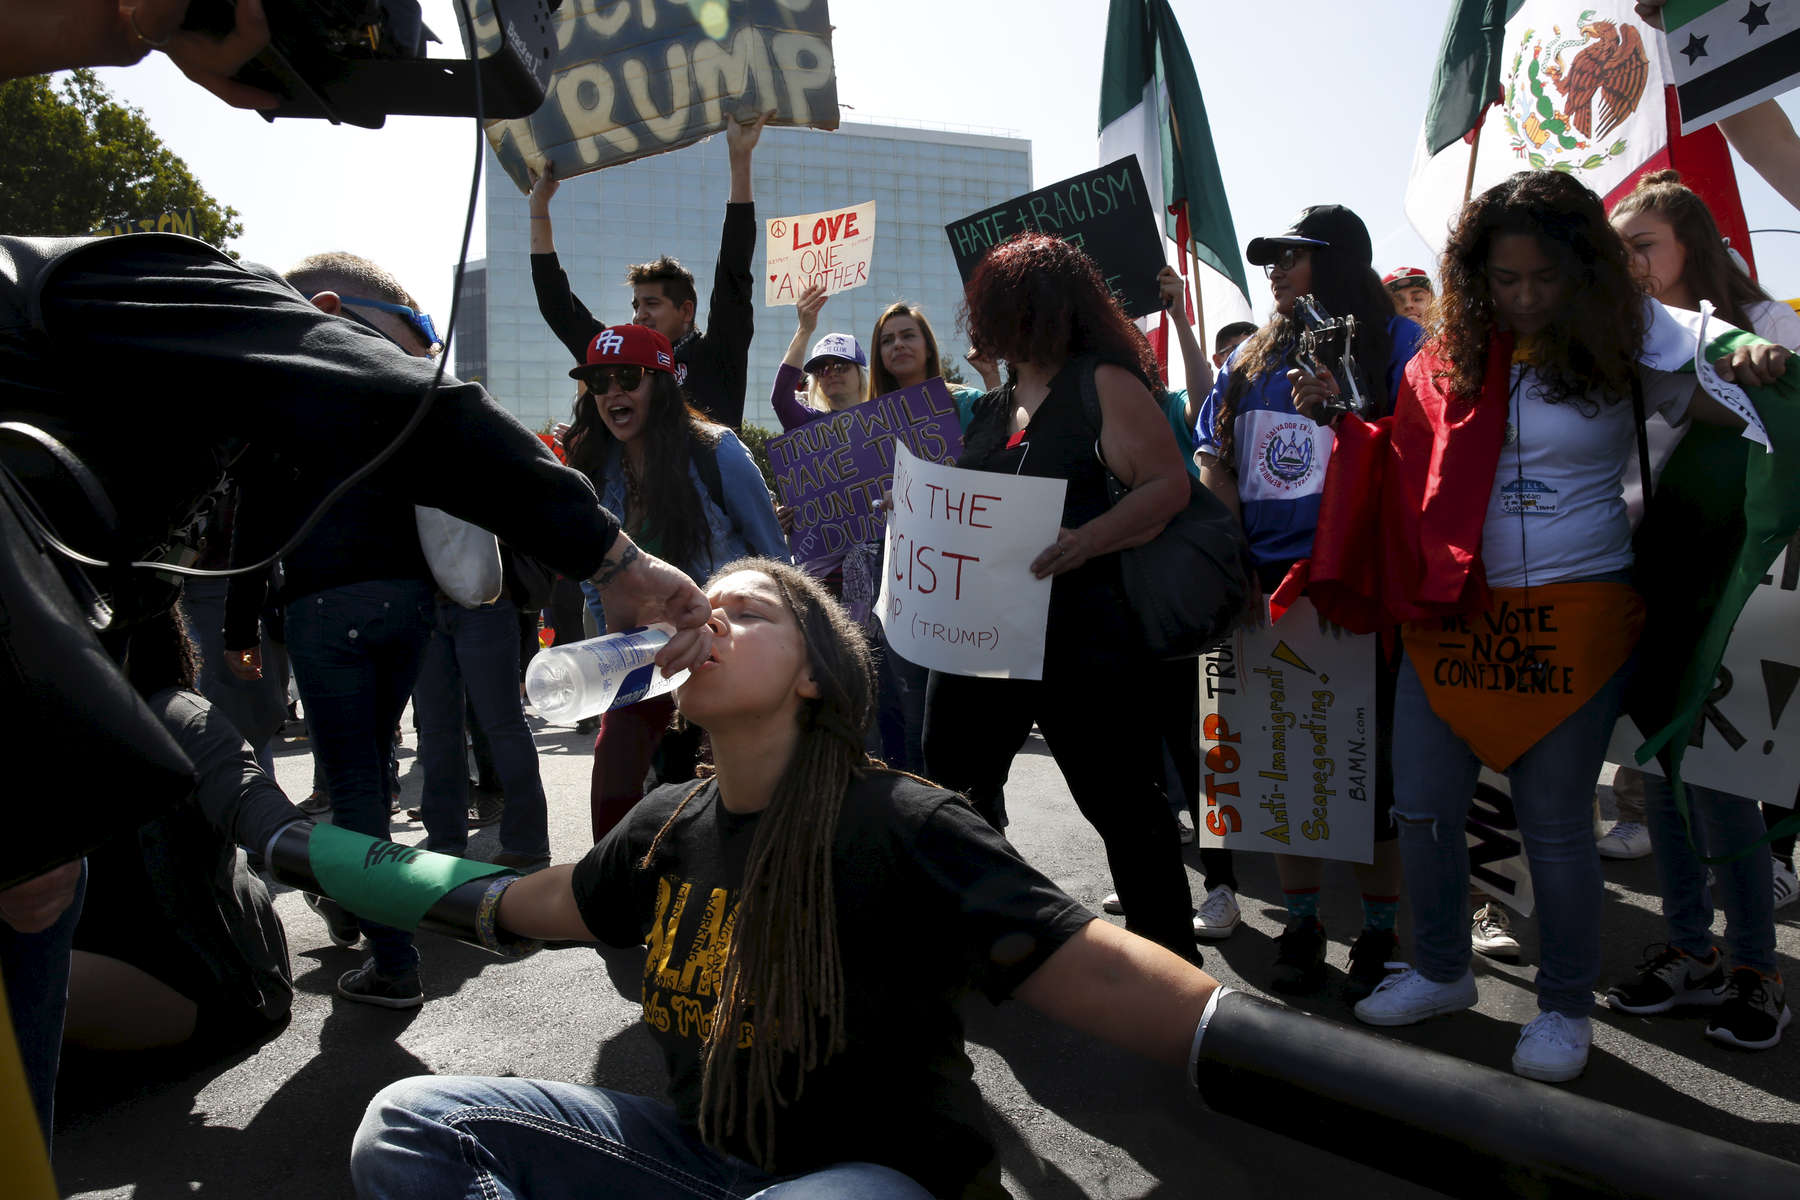 Melissa Crosby gets a drink of water from another protester after chaining herself with other protesters to block off access roads outside of the Hyatt Regency during the first day of the California Republican Party Convention which featured speeches from Presidential candidates Donald Trump and John Kasich among others April 29, 2016 in Burlingame, Calif.